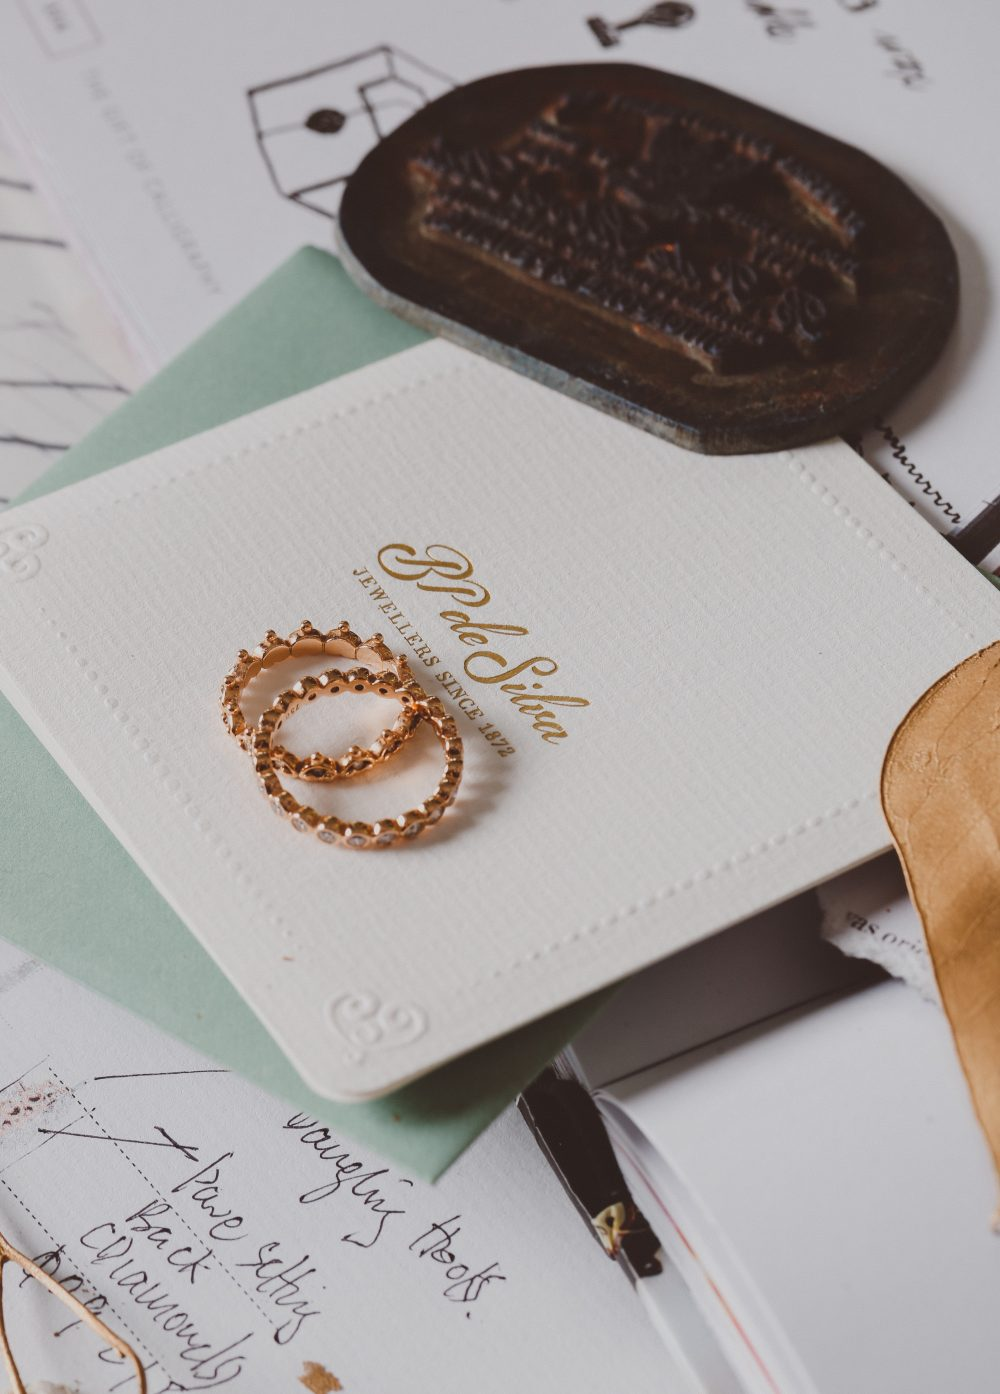 Long-standing jewellery company streamlines operations through ERP system